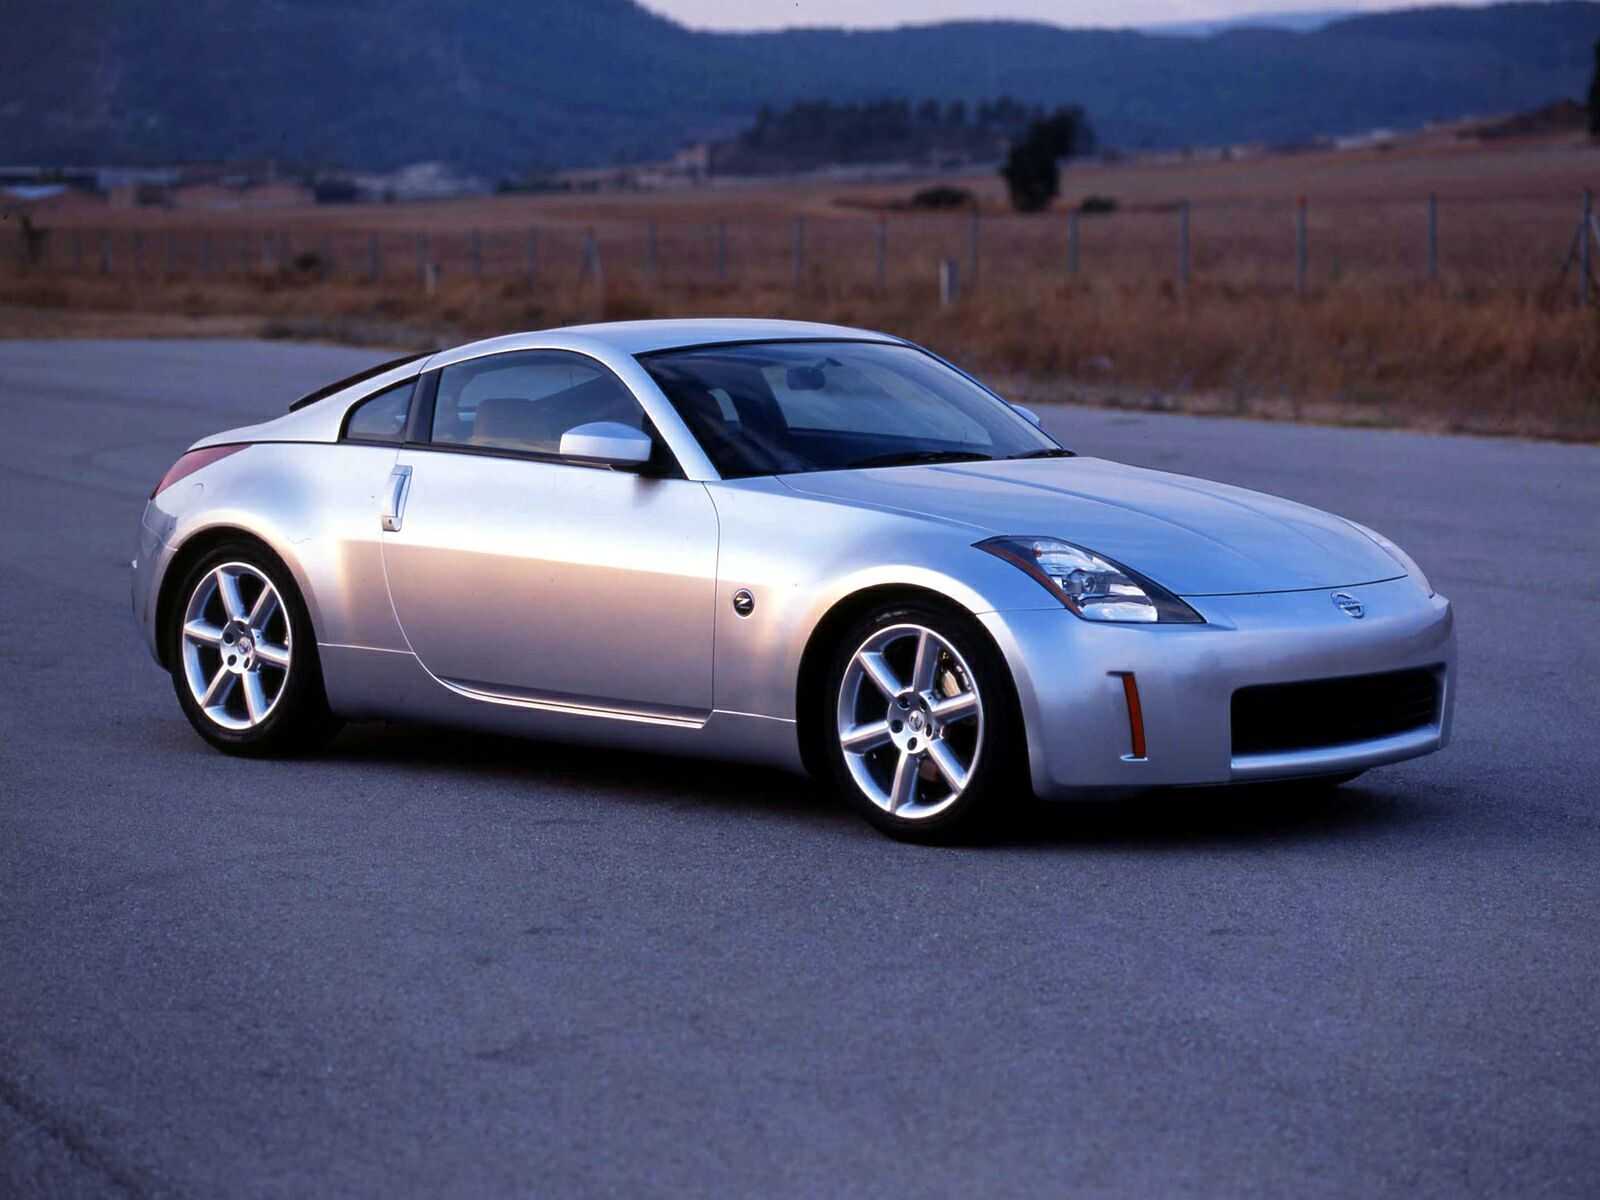 2005 nissan 350z review gallery top speed. Black Bedroom Furniture Sets. Home Design Ideas